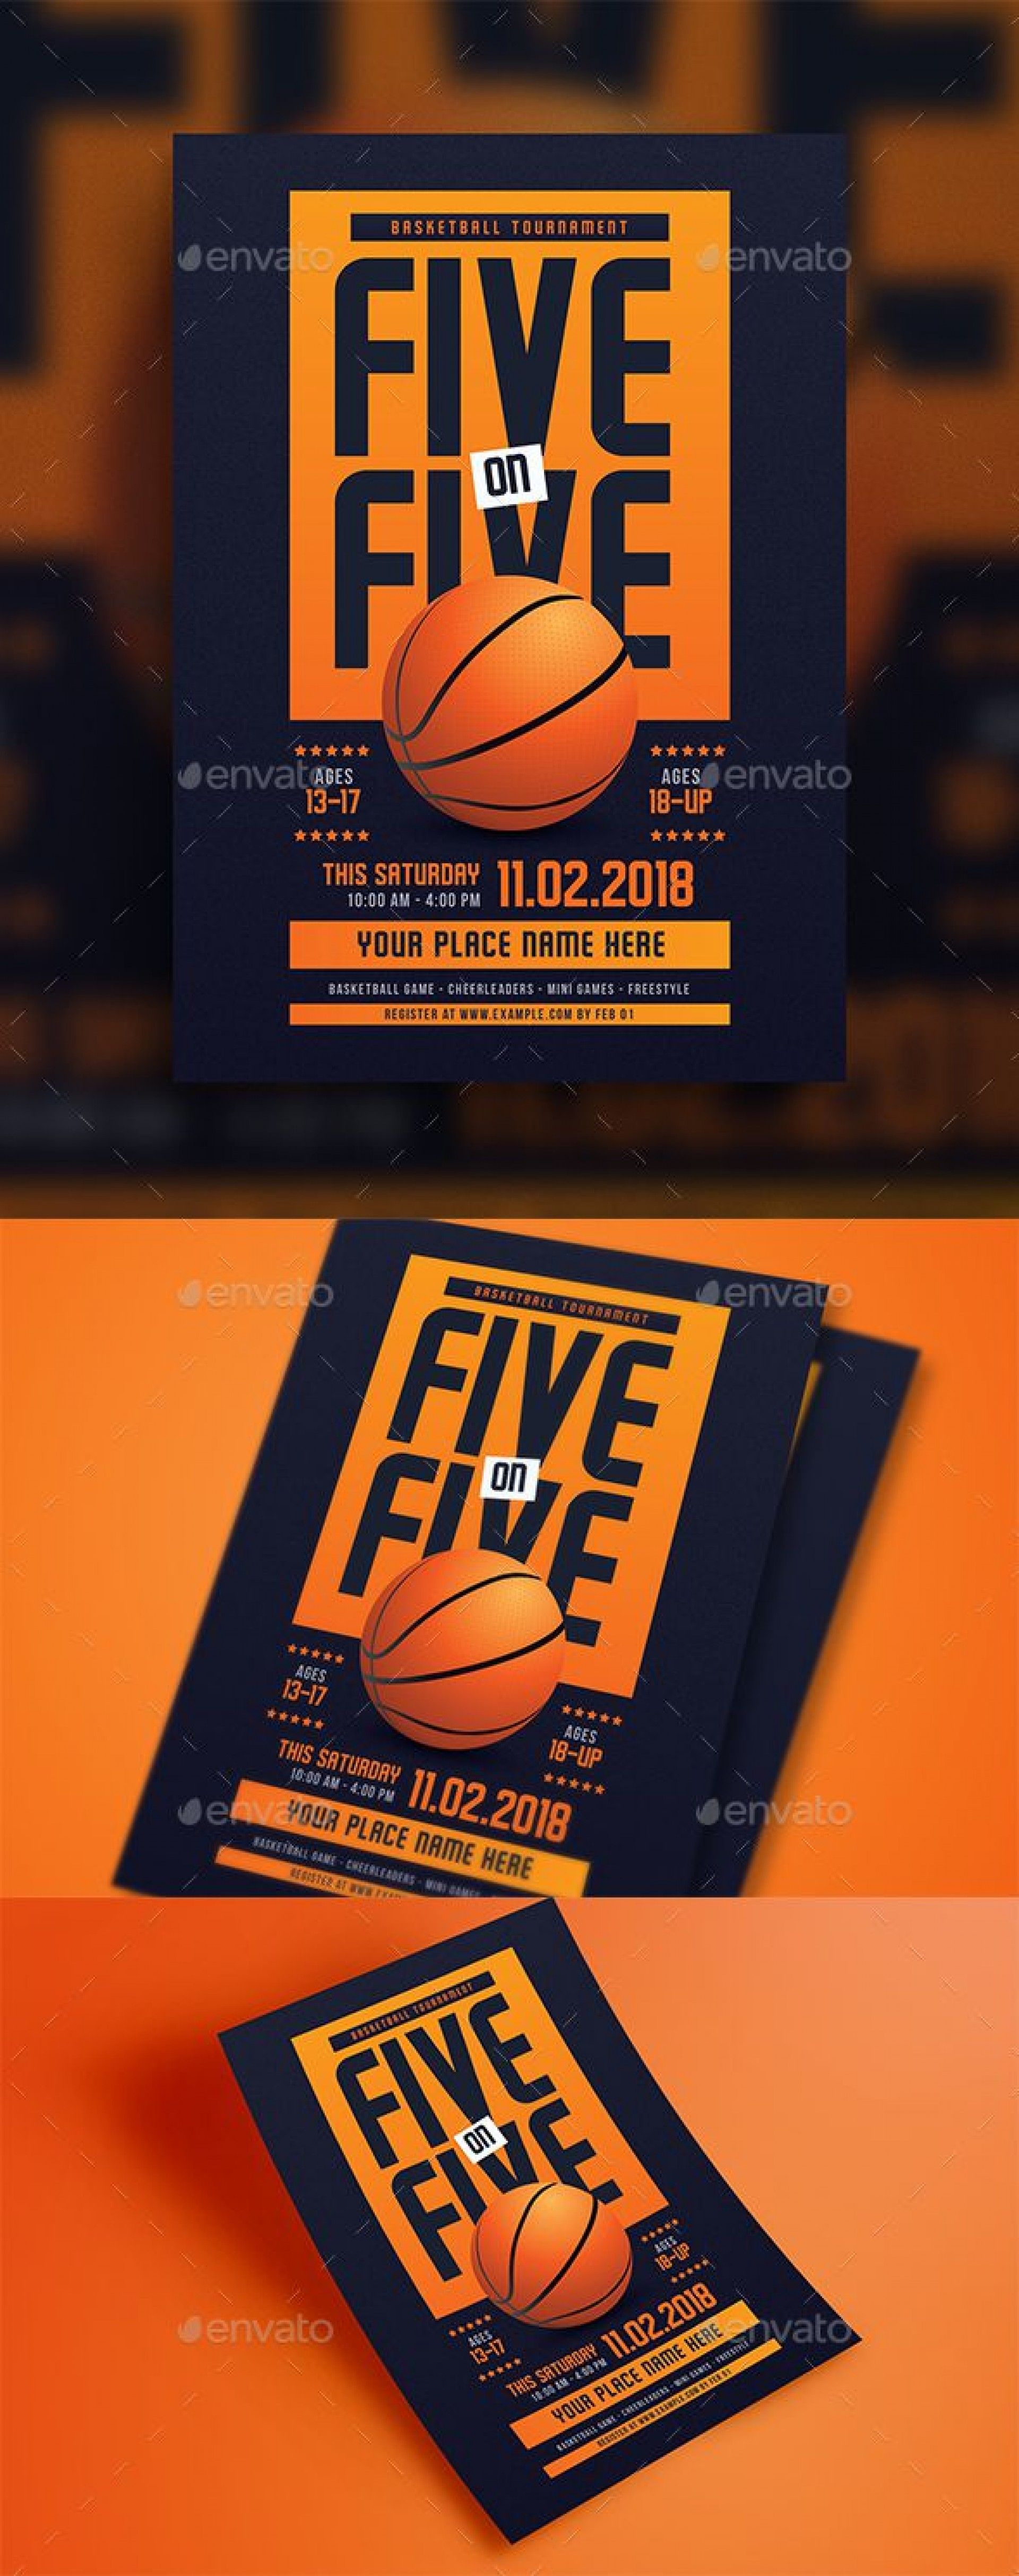 009 Striking Basketball Tournament Flyer Template Highest Quality  3 On Free1920